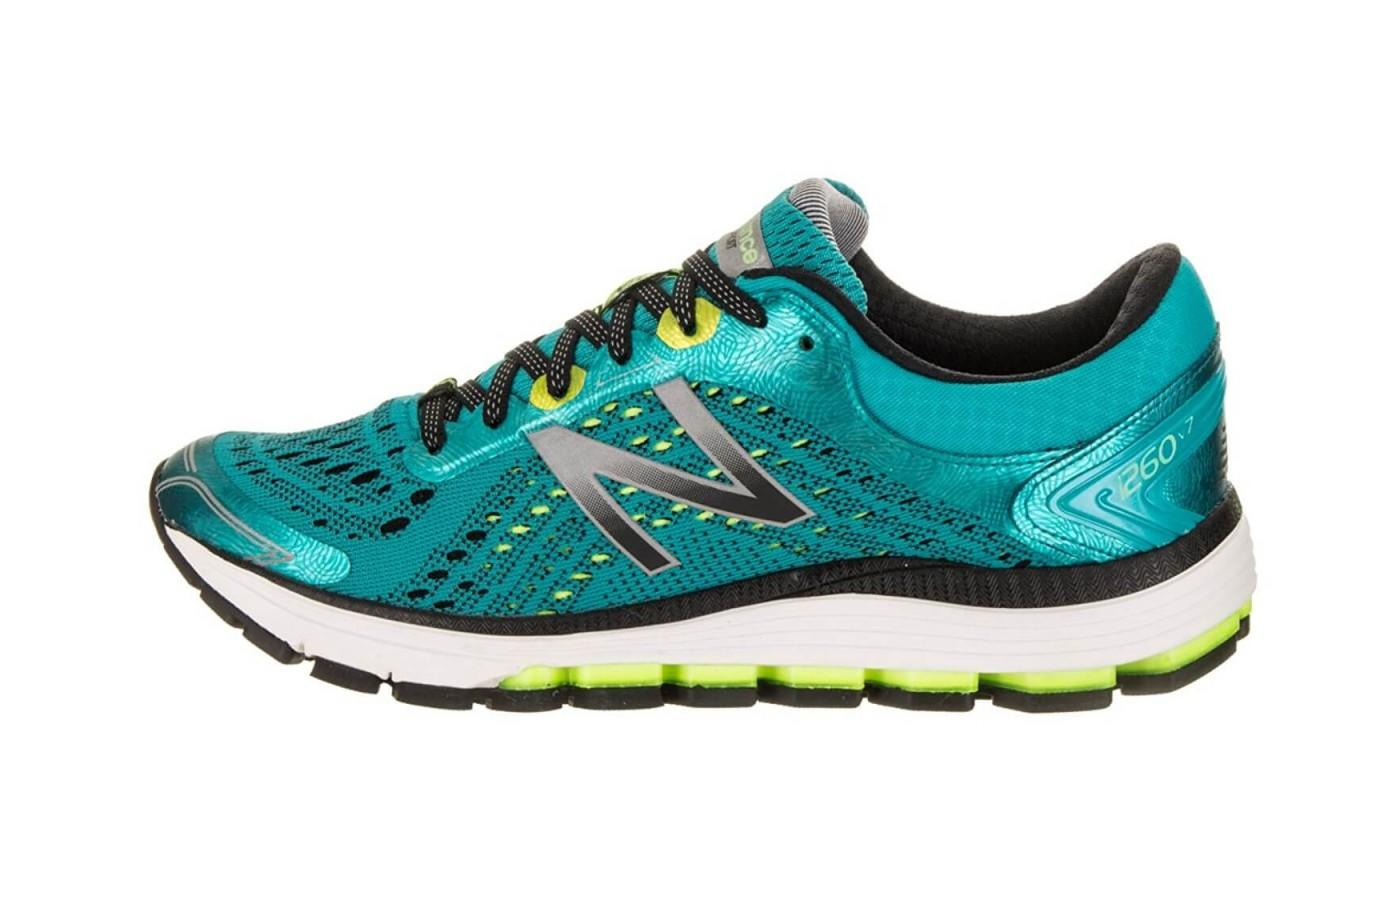 This shoe comes in a variety of bright, eye catching colors and styles.